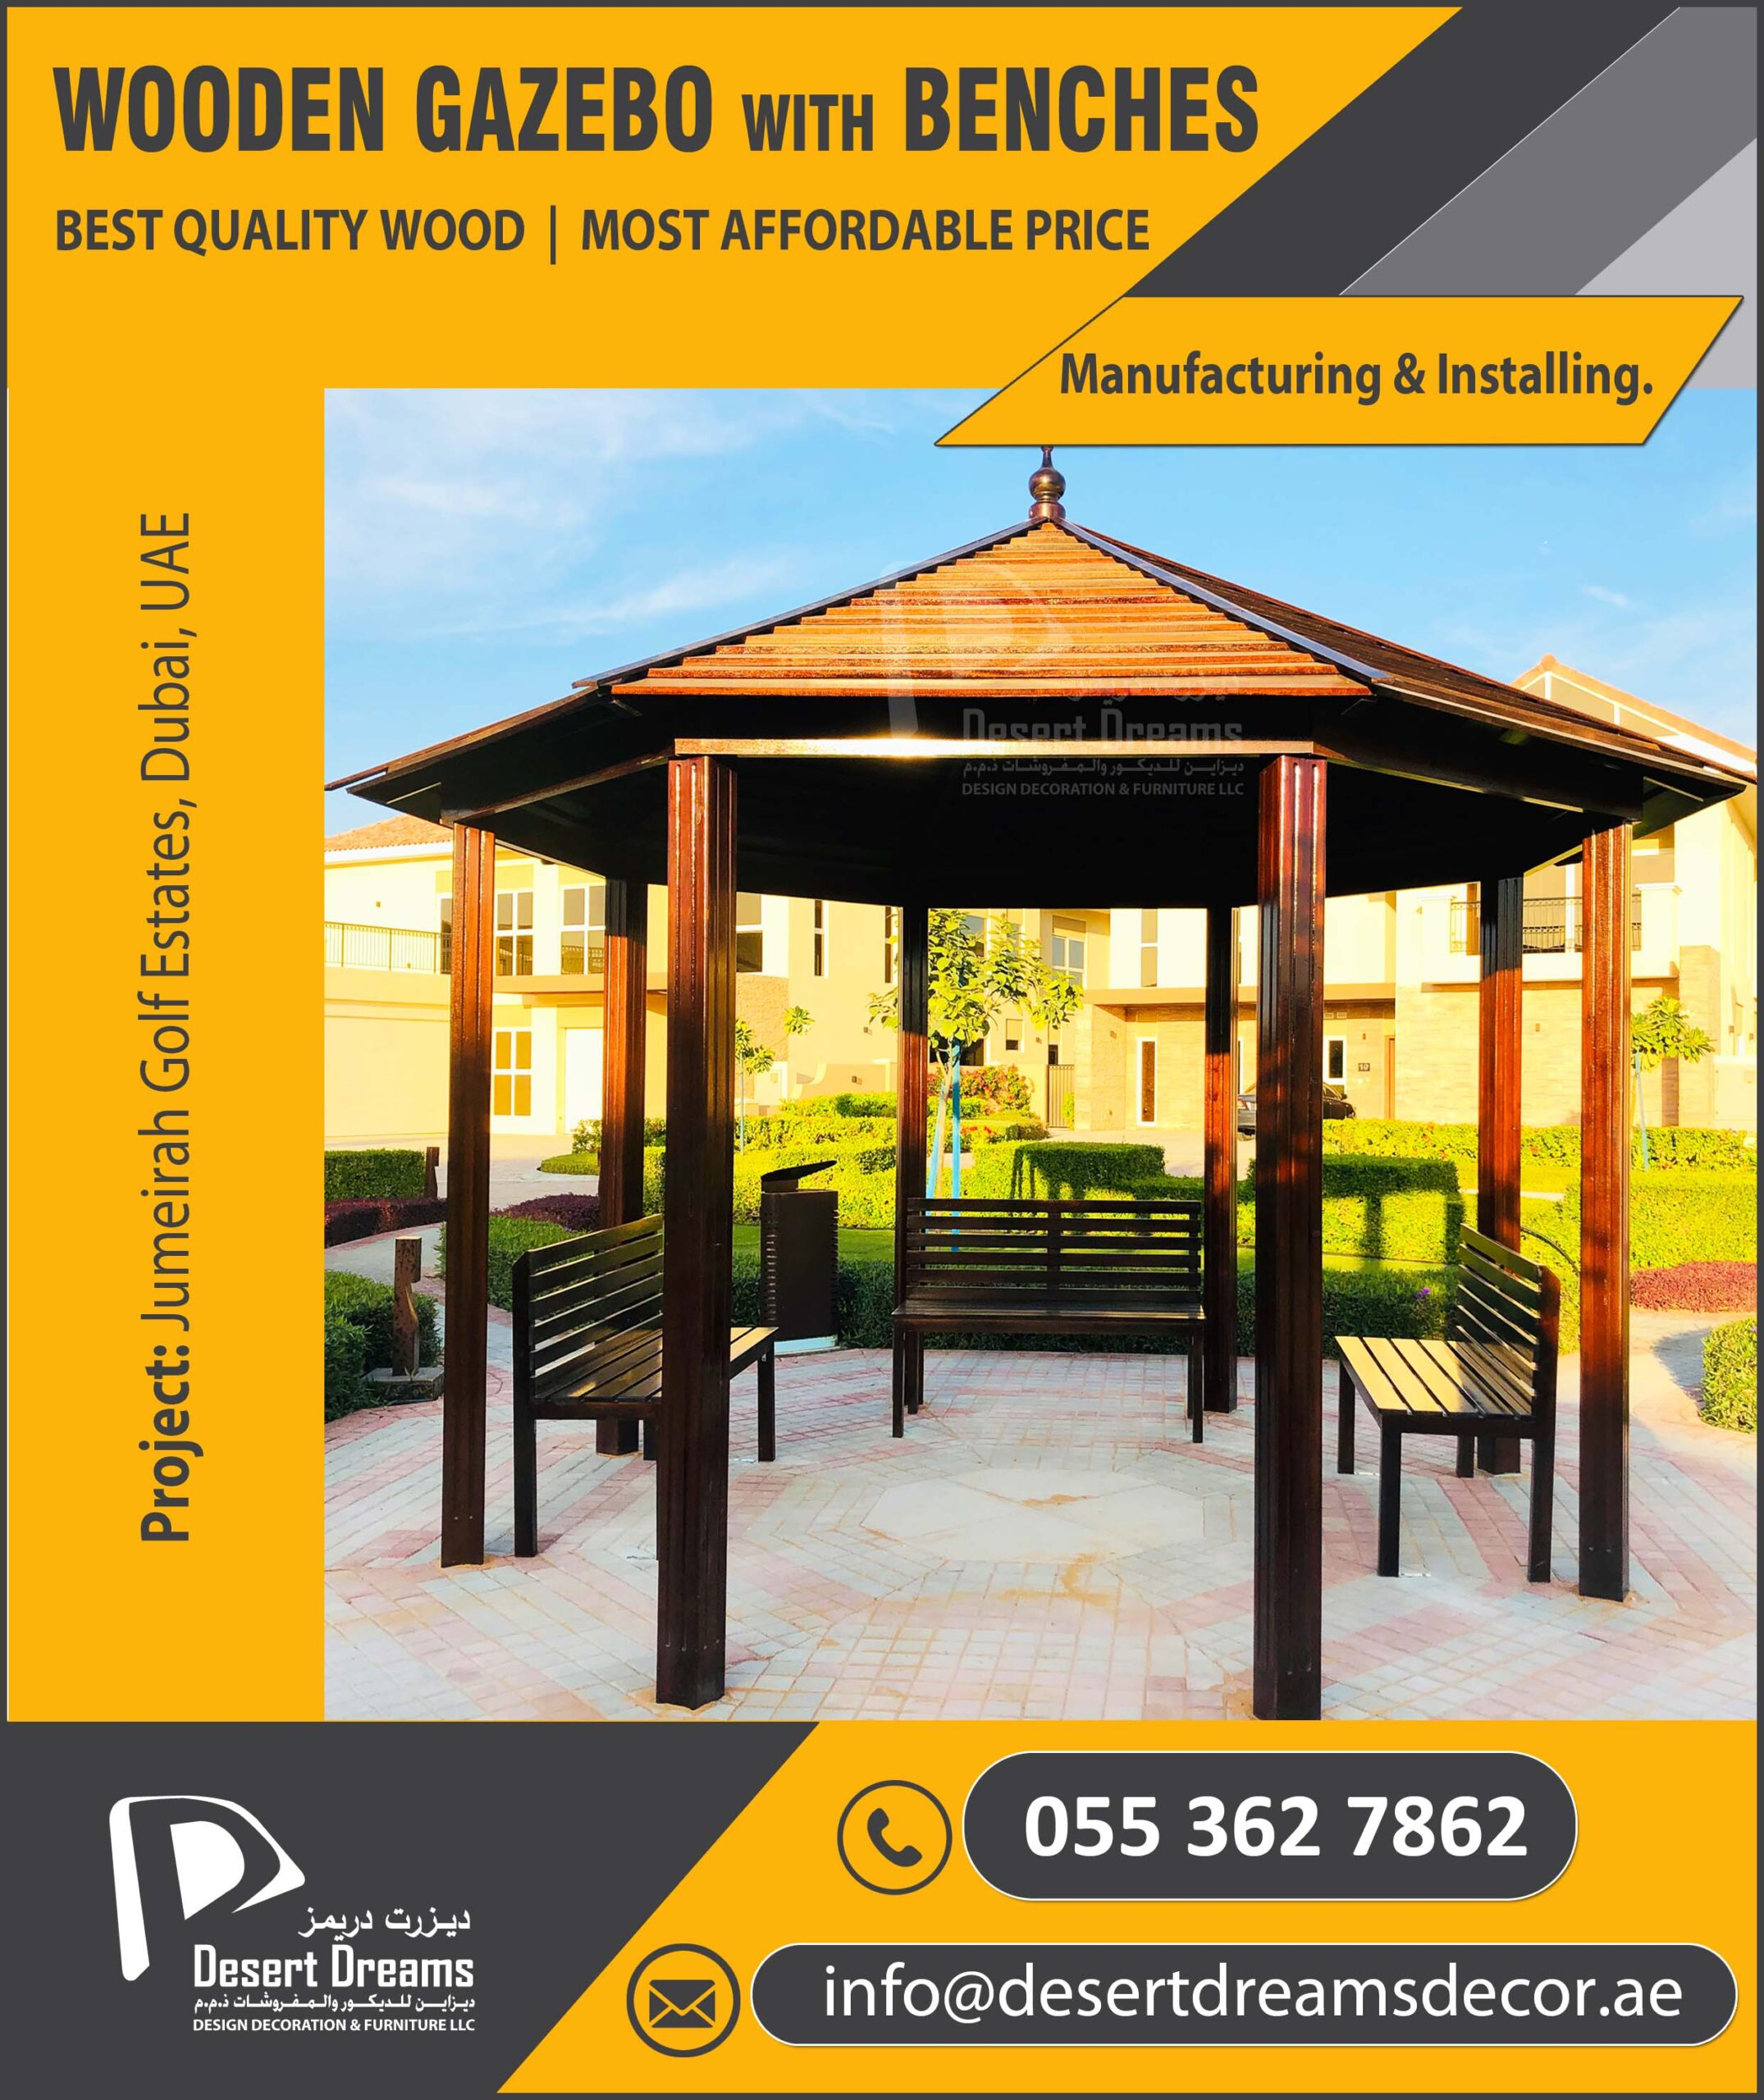 Wooden Gazebo Jumeirah,Wooden Gazebo UAE.jpg